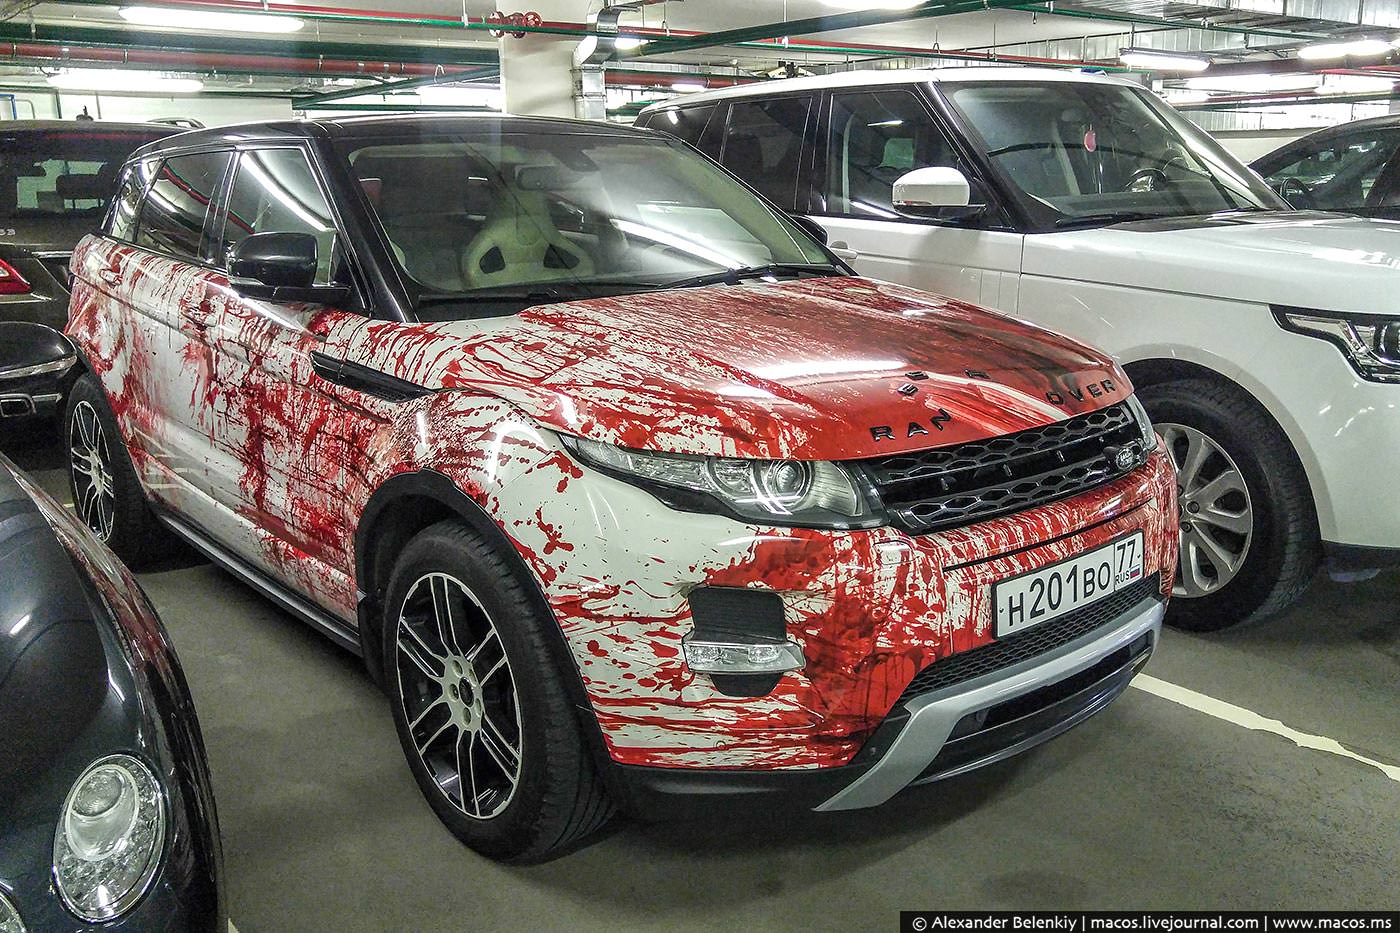 a4629d3775 Range Rover Evoque Gets Bloody Makeover in Russia as Halloween Costume